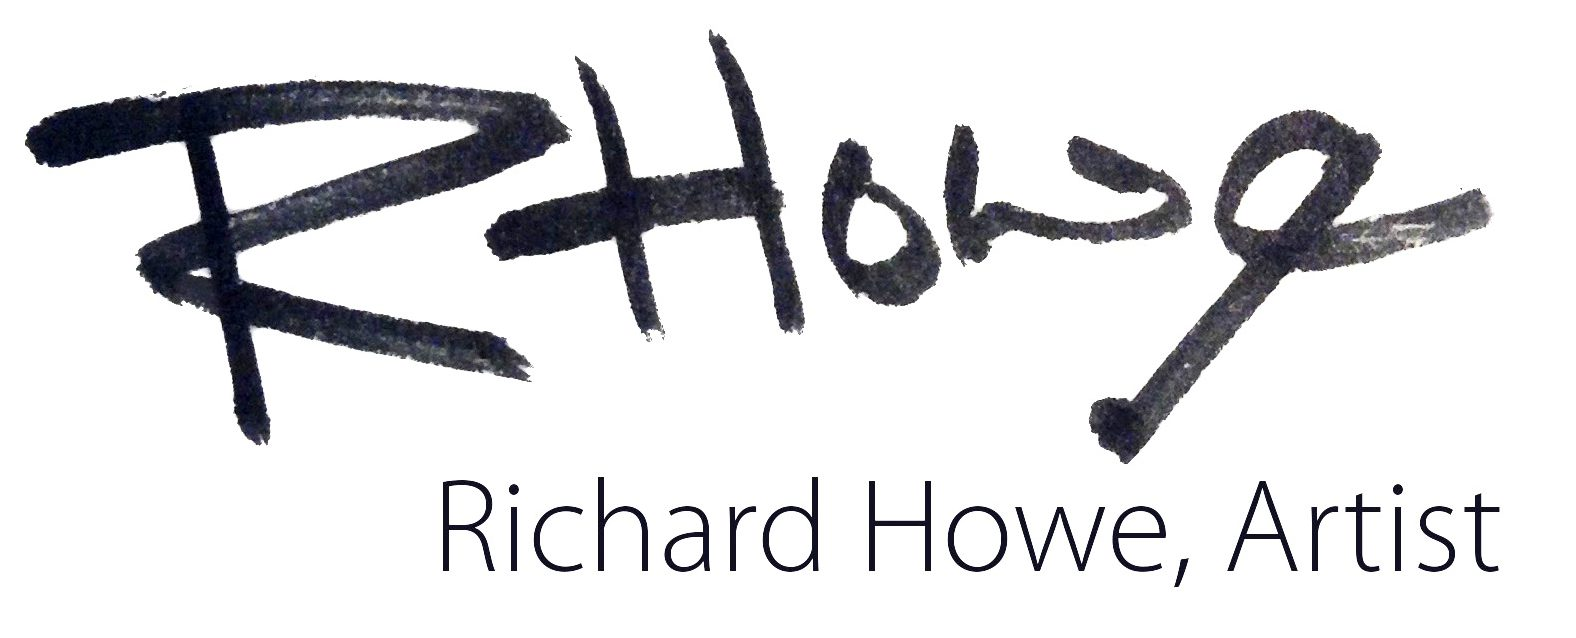 Richard Howe – Artist